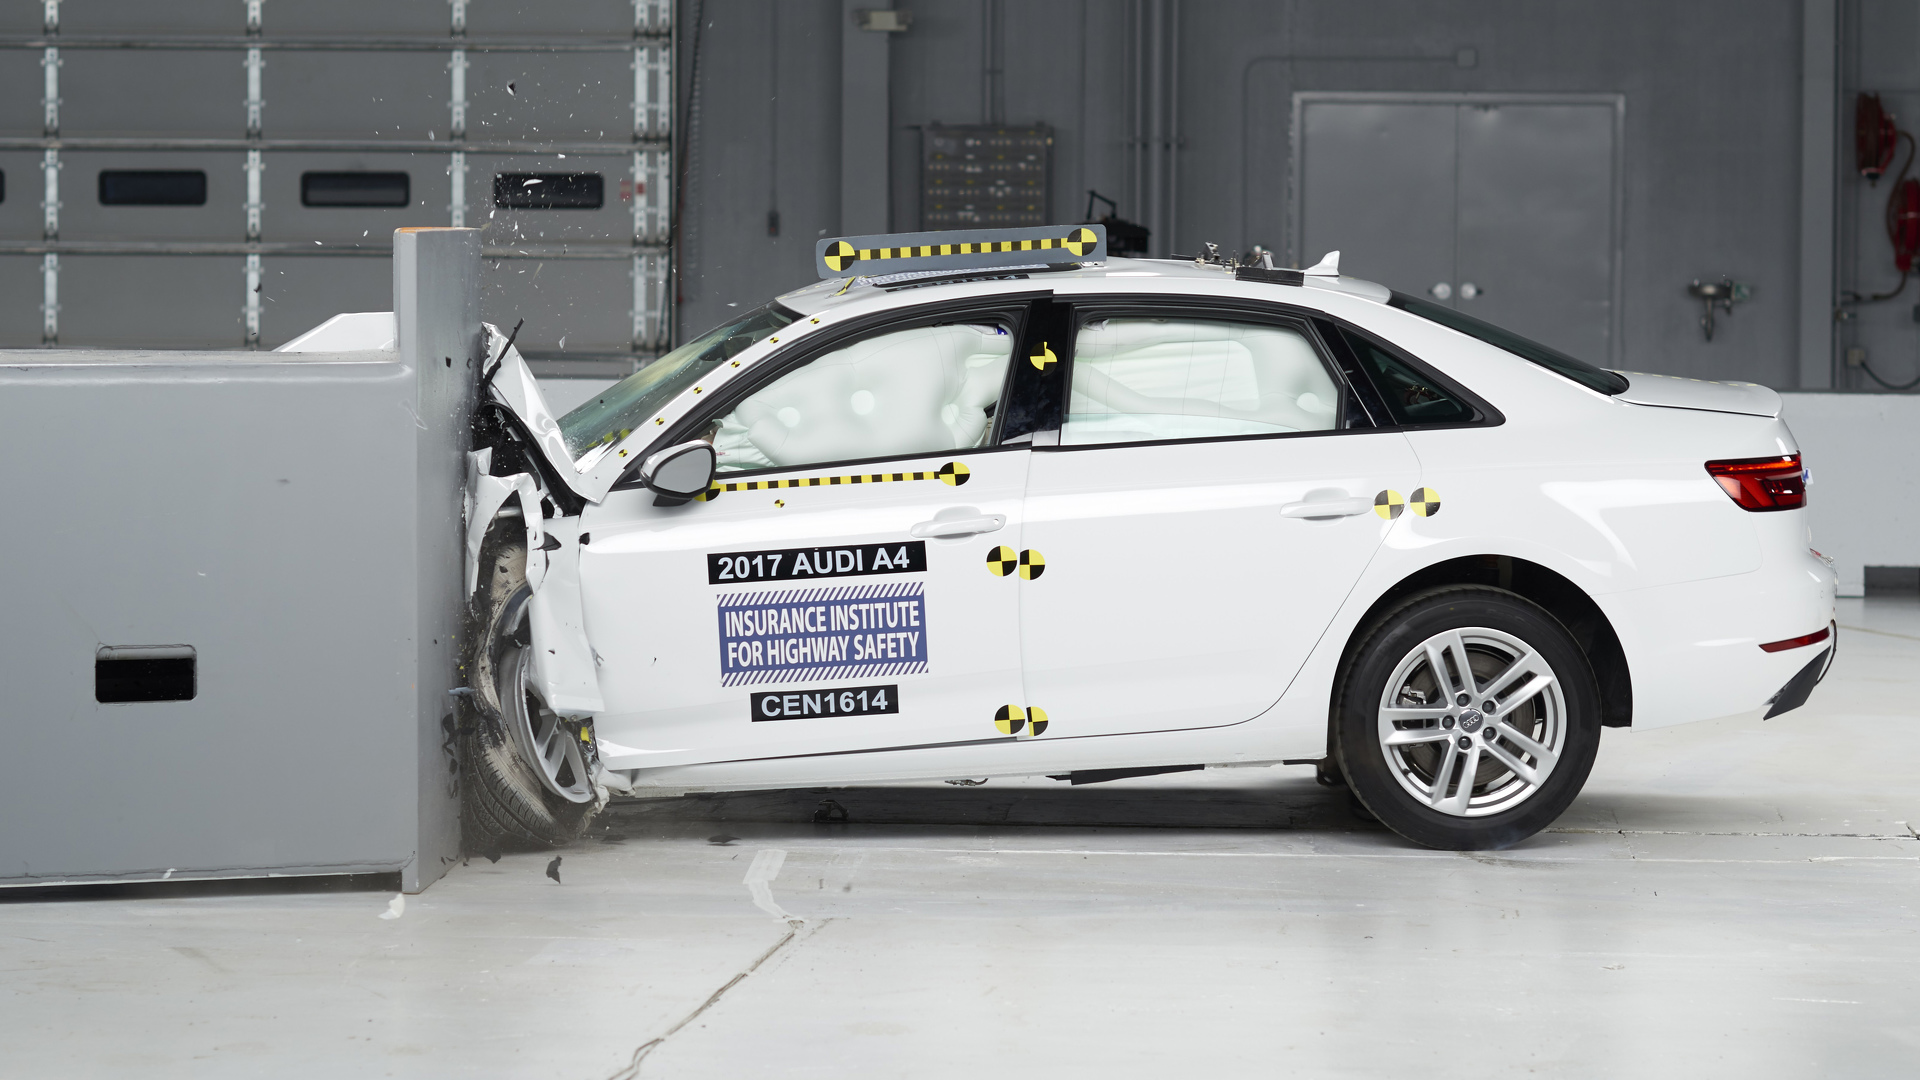 2017 Audi A4 scores IIHS Top Safety Pick+ rating